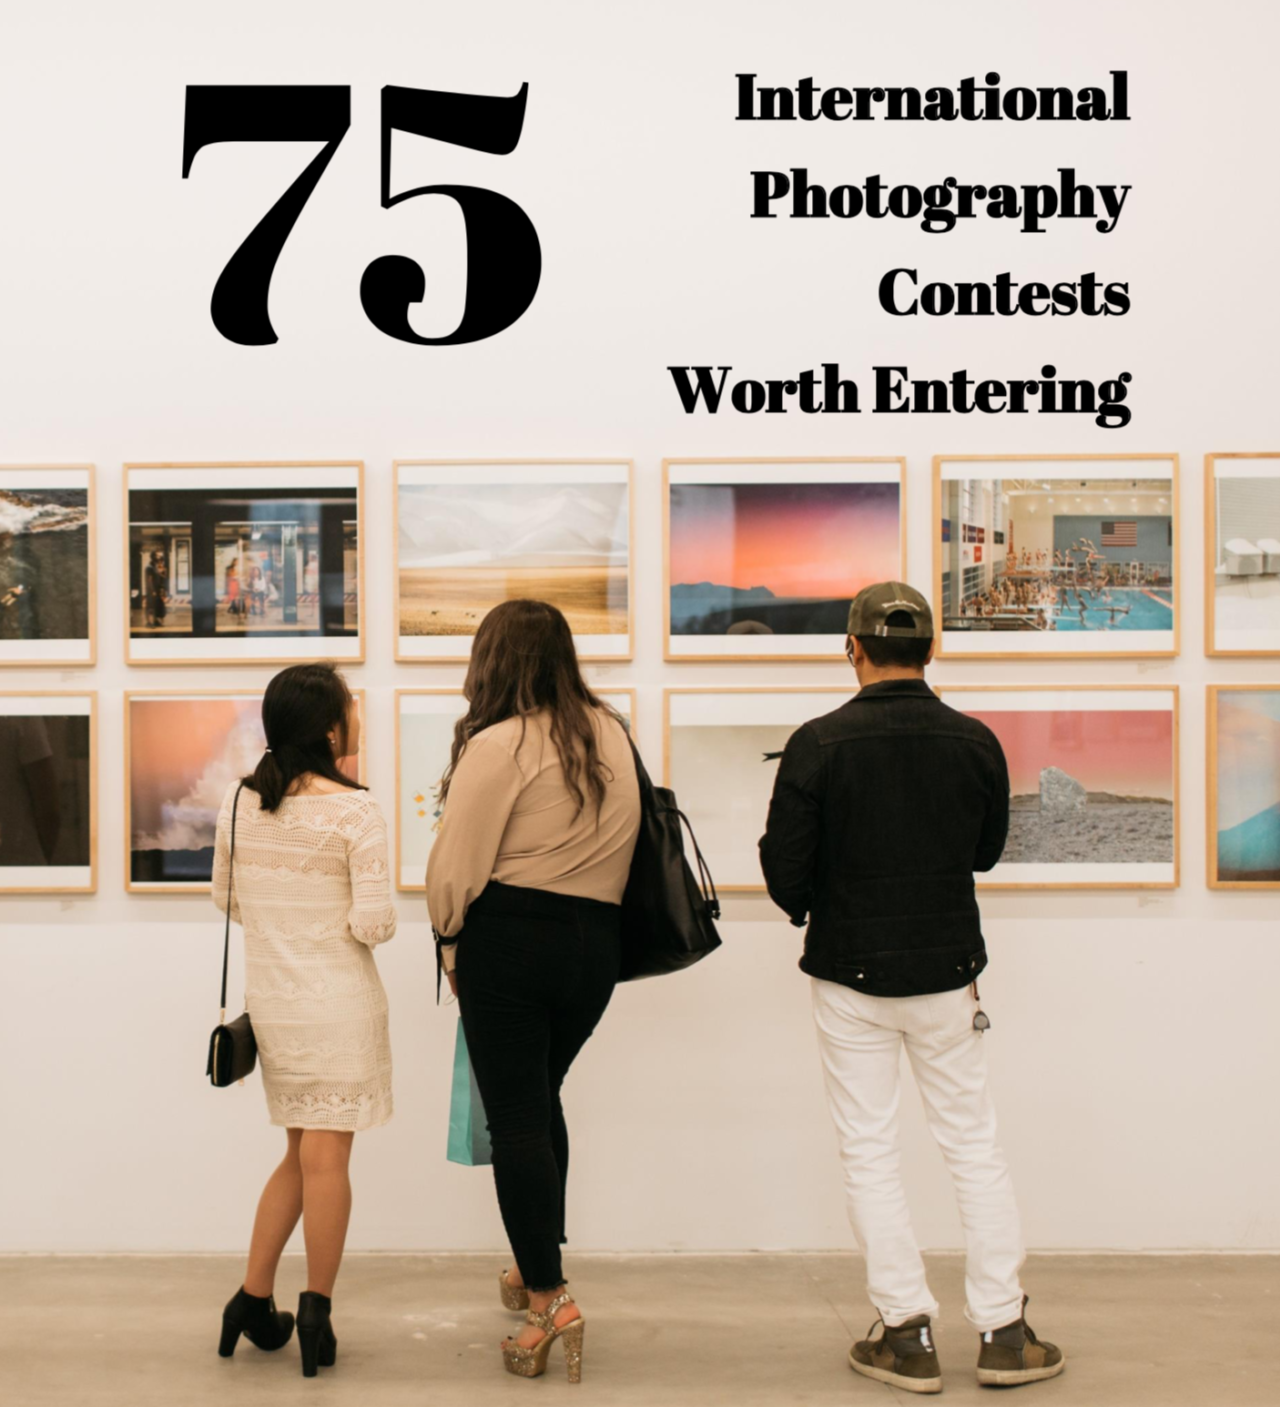 75 International Photography Contests Worth Entering: A New Guide from Feature Shoot - Feature Shoot